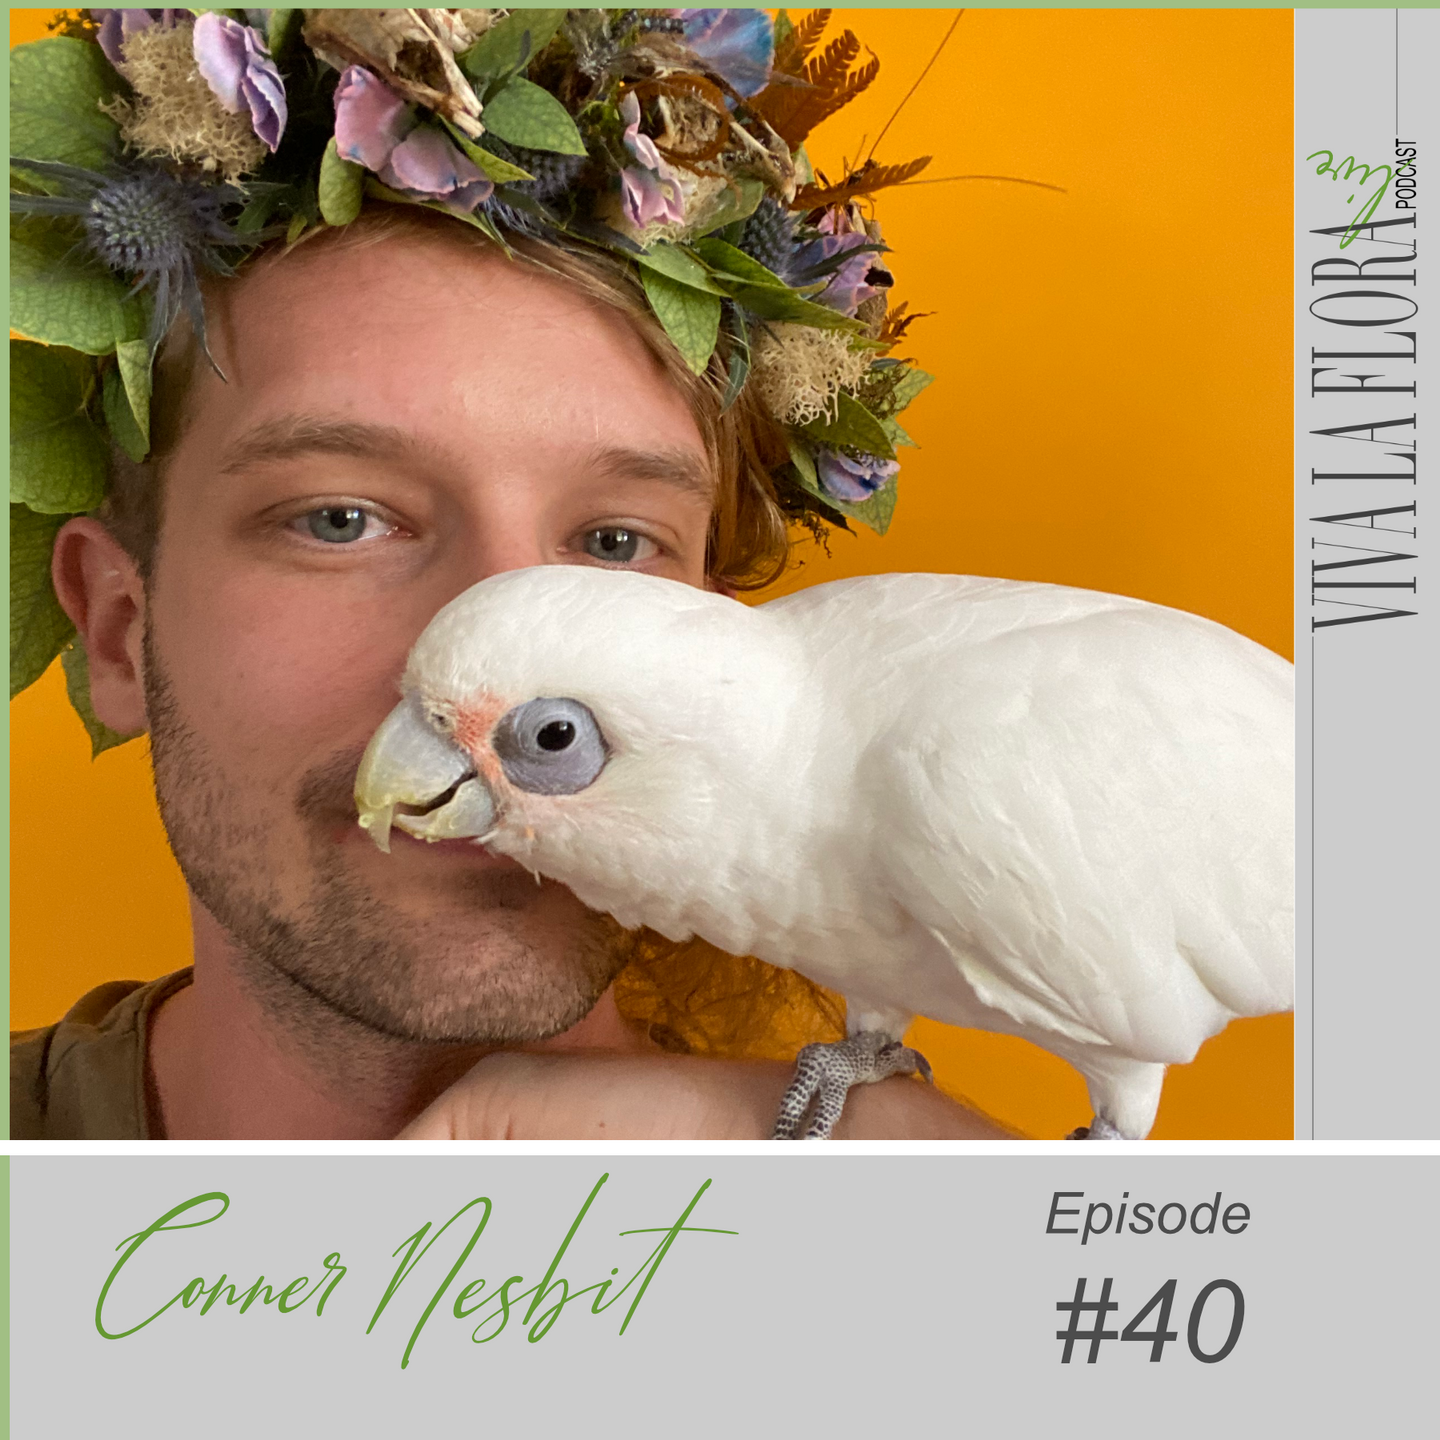 guy holding a white bird and wearing a floral crown on the cover of Viva La Flora Live Podcast